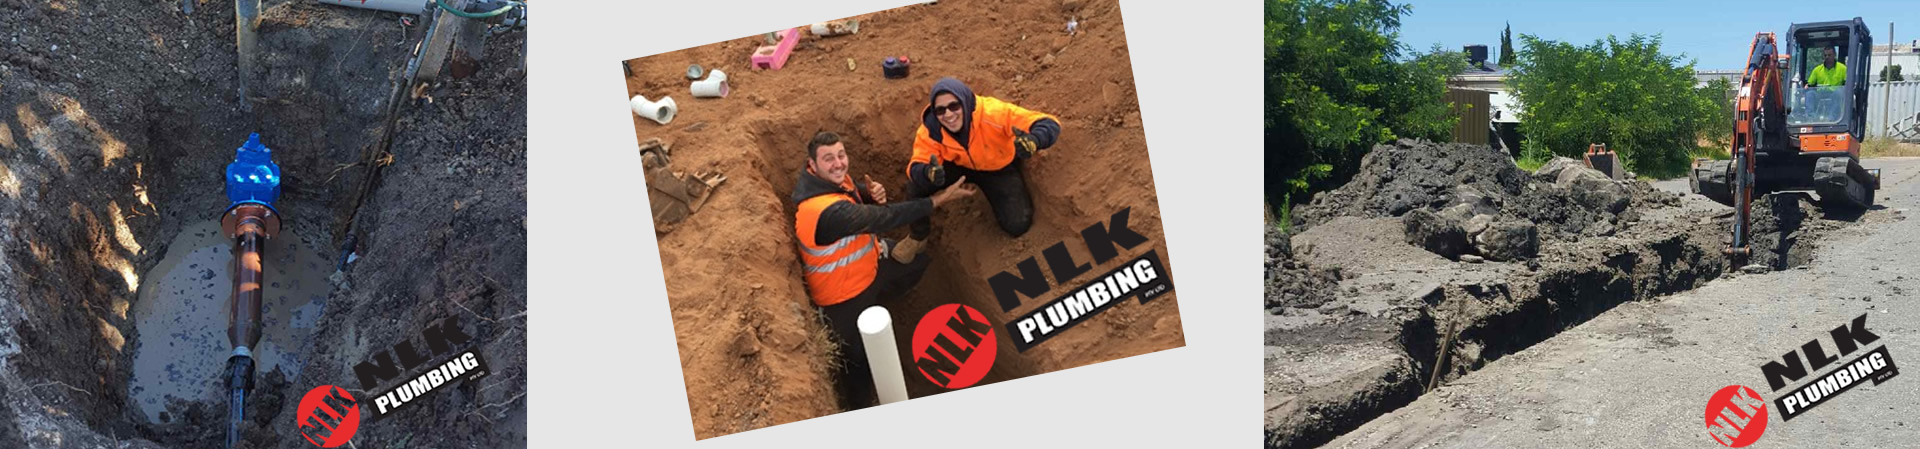 Best Plumber in Your Local Area Most Helpful Environment